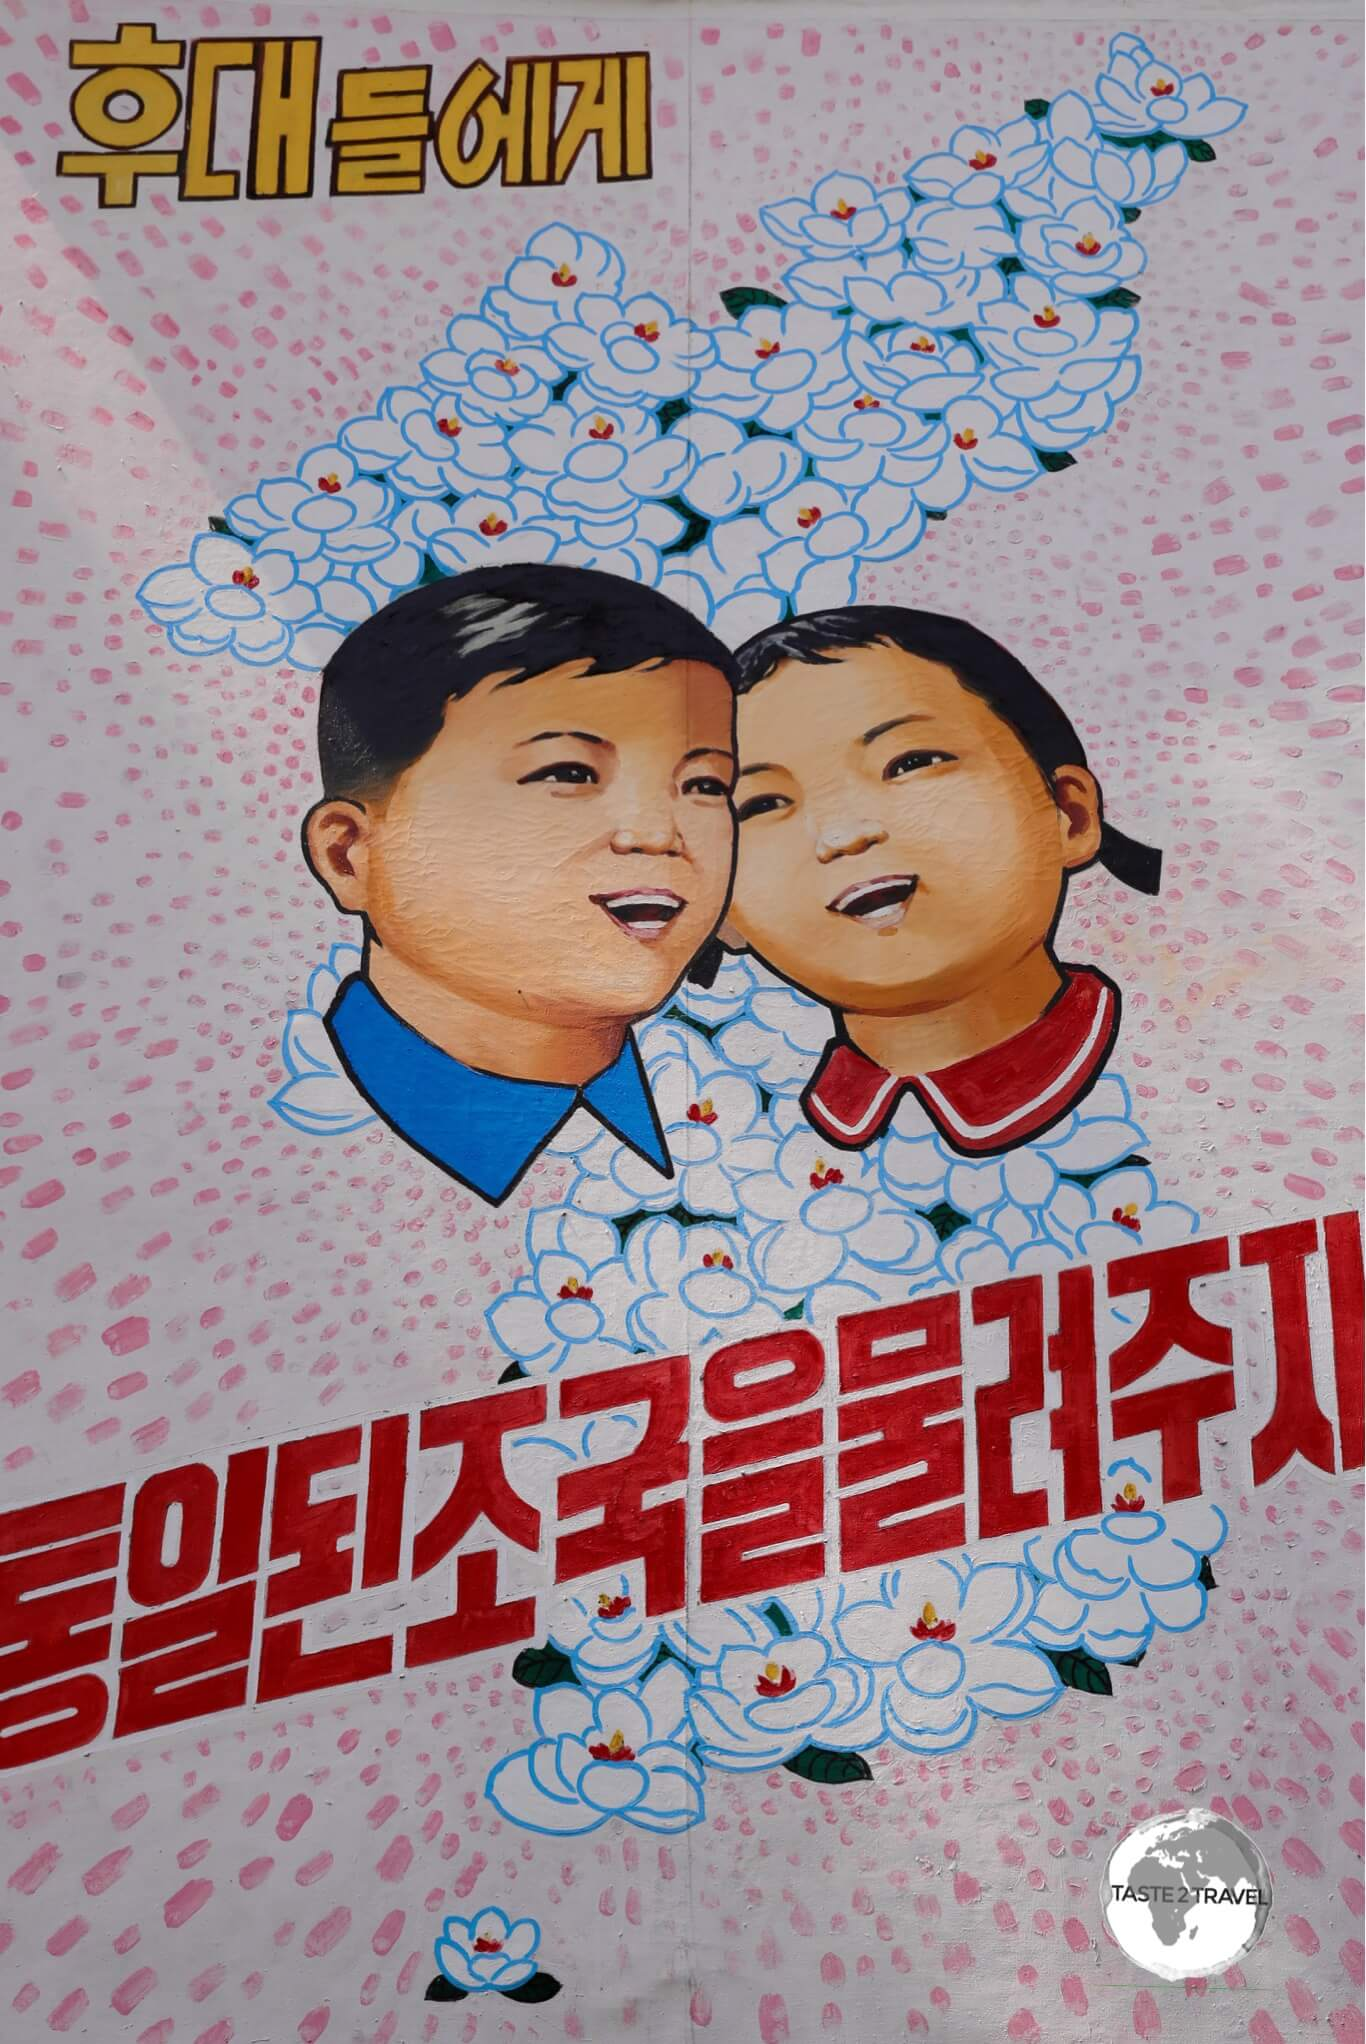 A propaganda billboard at the DMZ depicts a reunified North and South Korea. The Koreas are often depicted as brother and sister in North Korean propaganda.